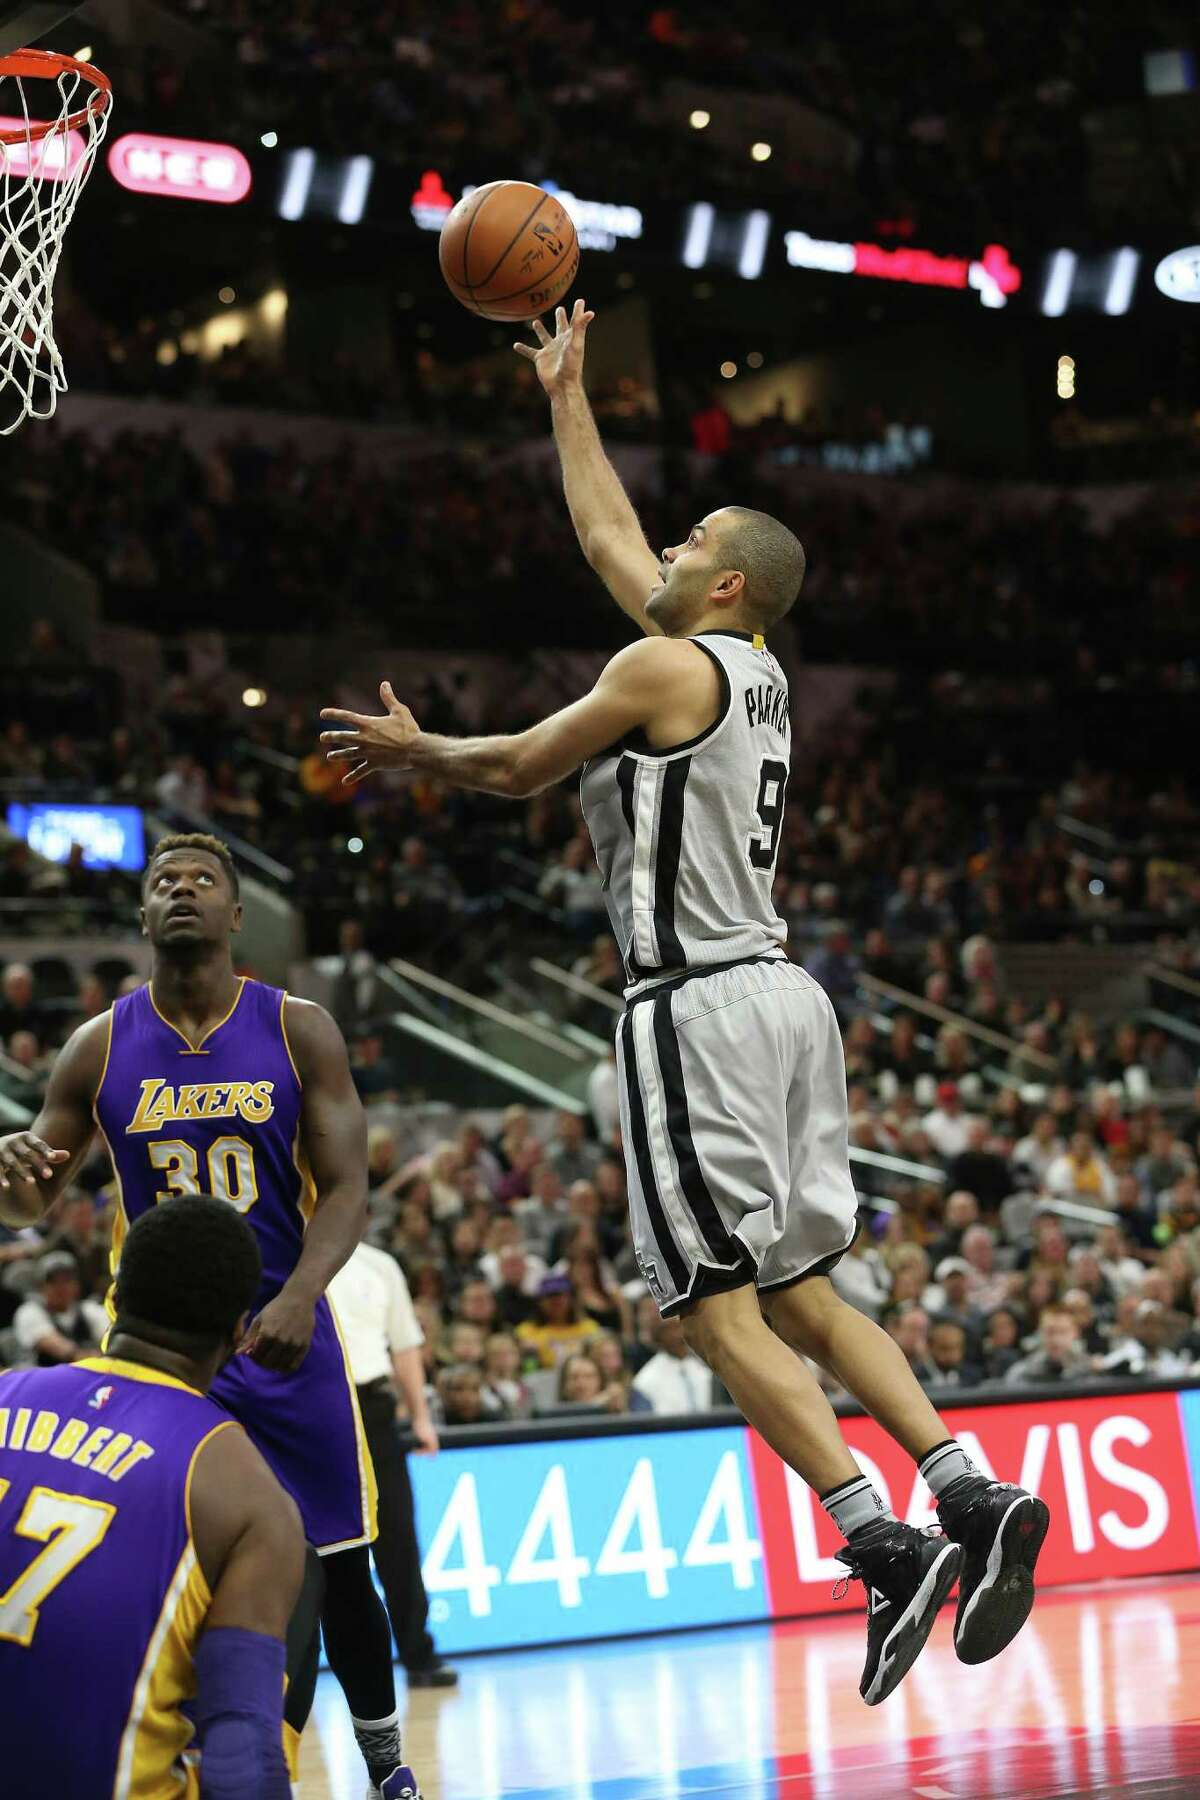 Tony parker launches a floater as the Spurs host the Lakers at the AT&T Center on February 6, 2016.